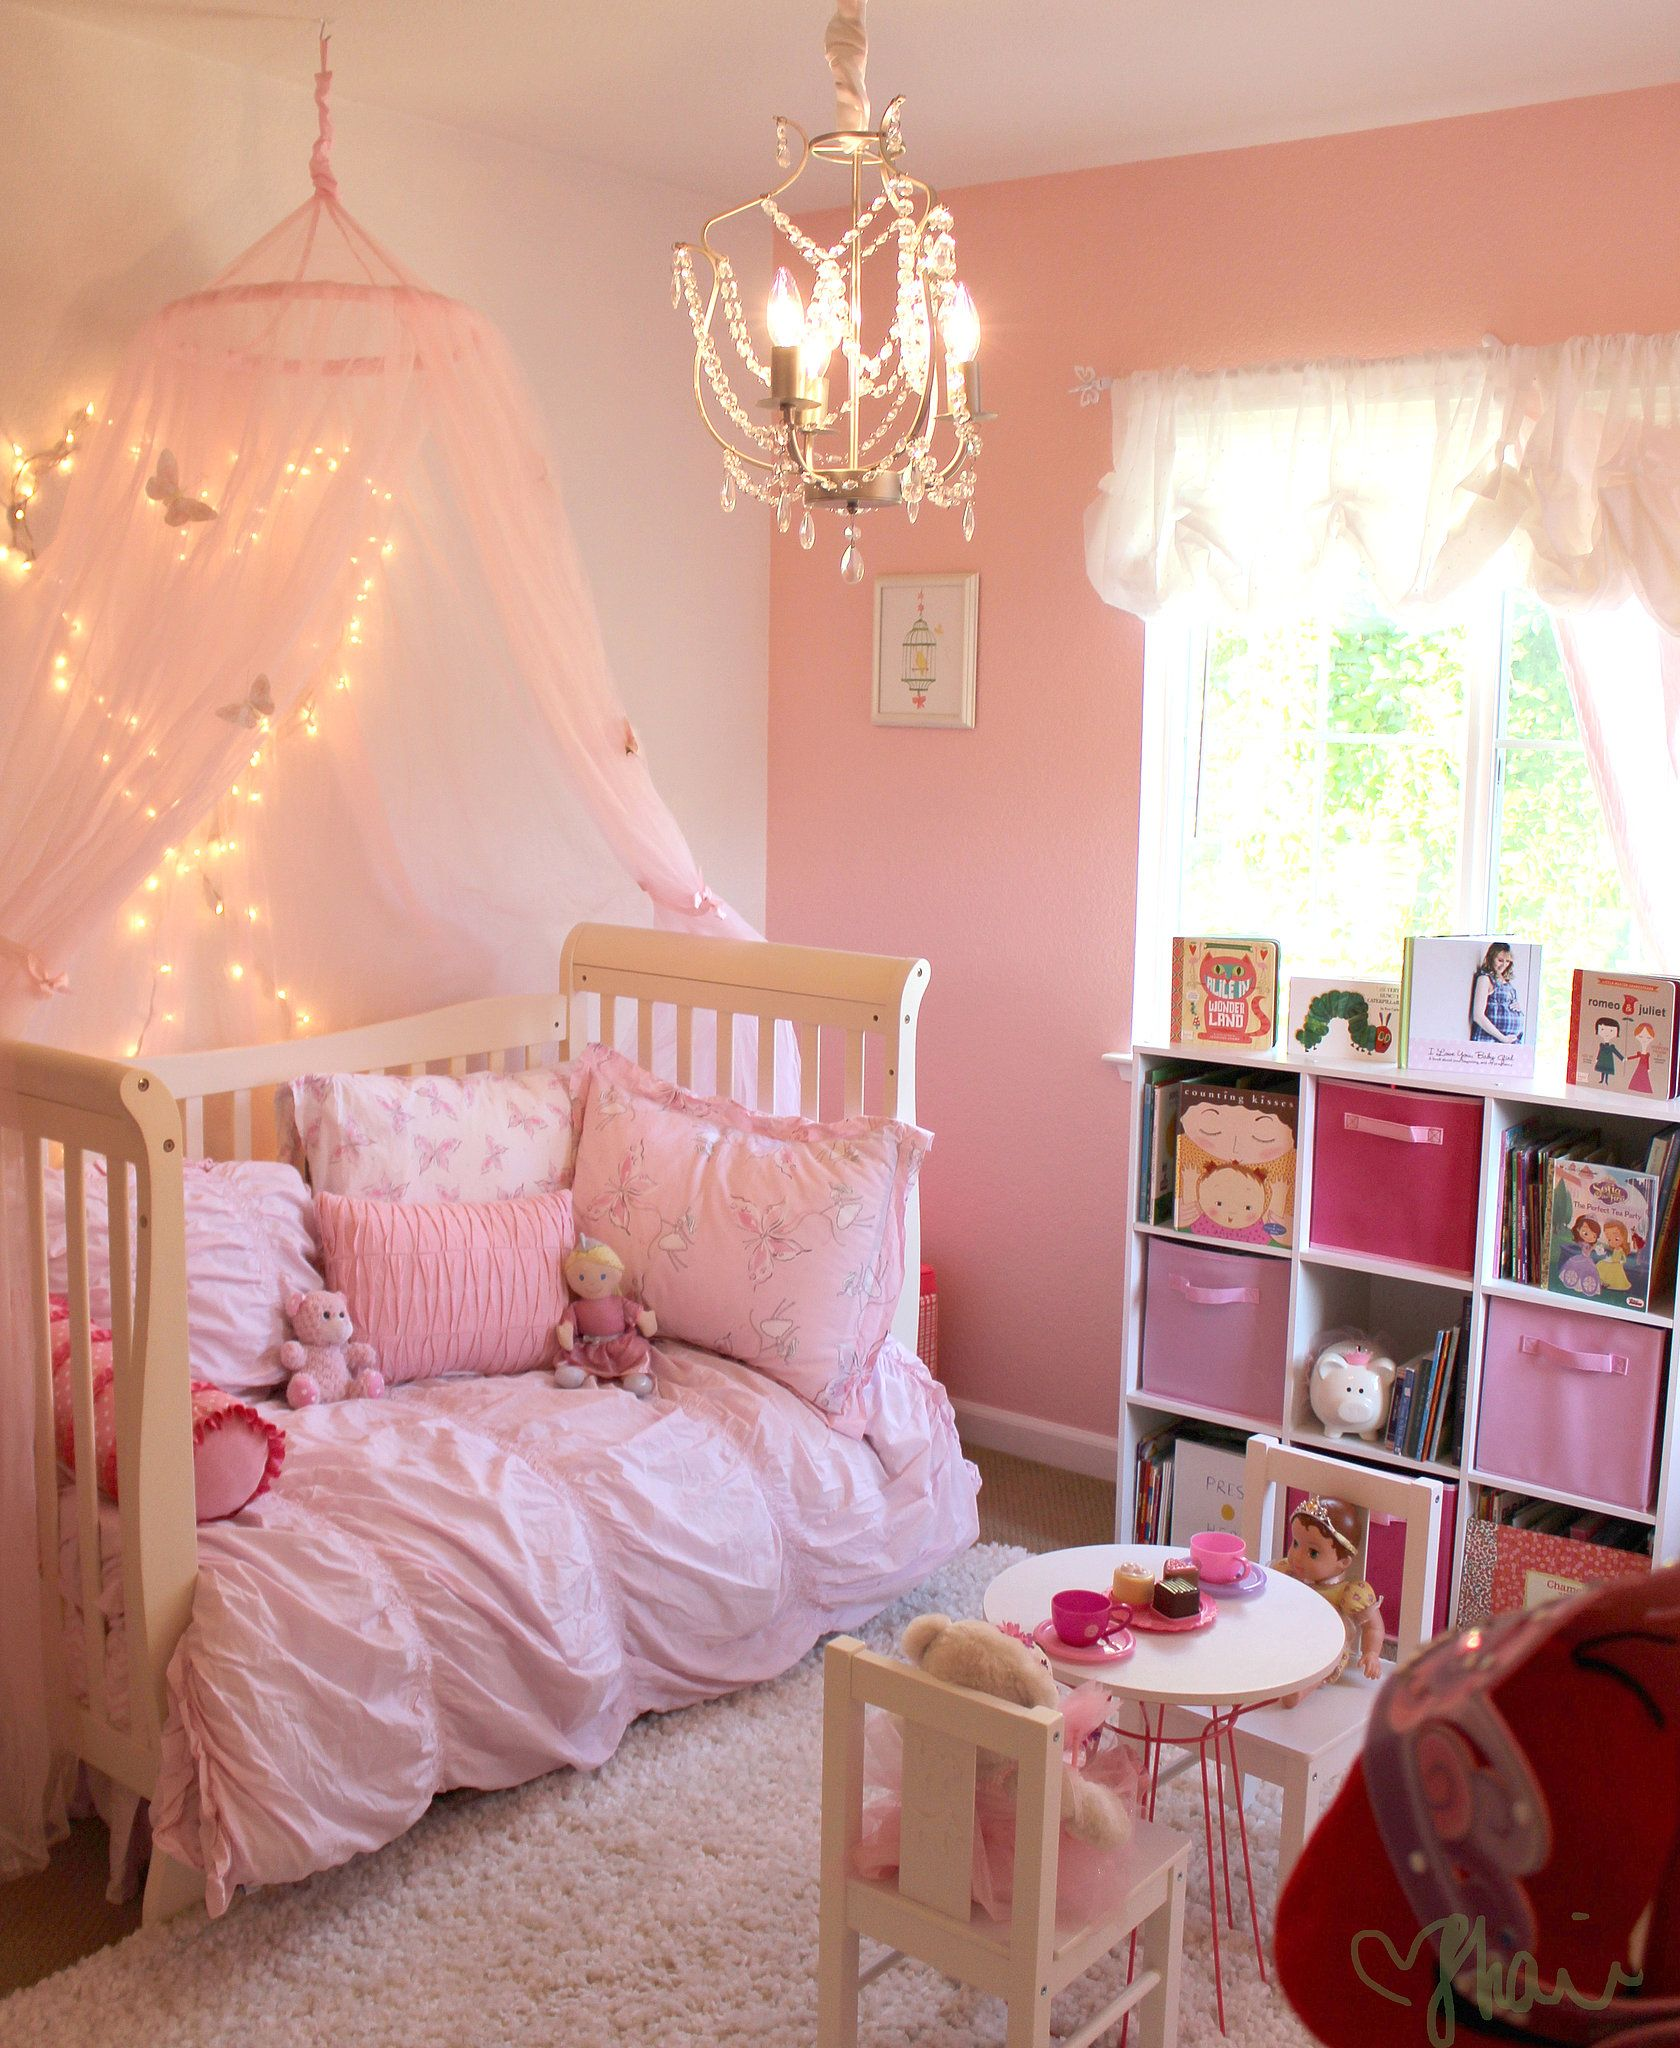 Girls bed canopy ideas - The Princess Toddler Bed